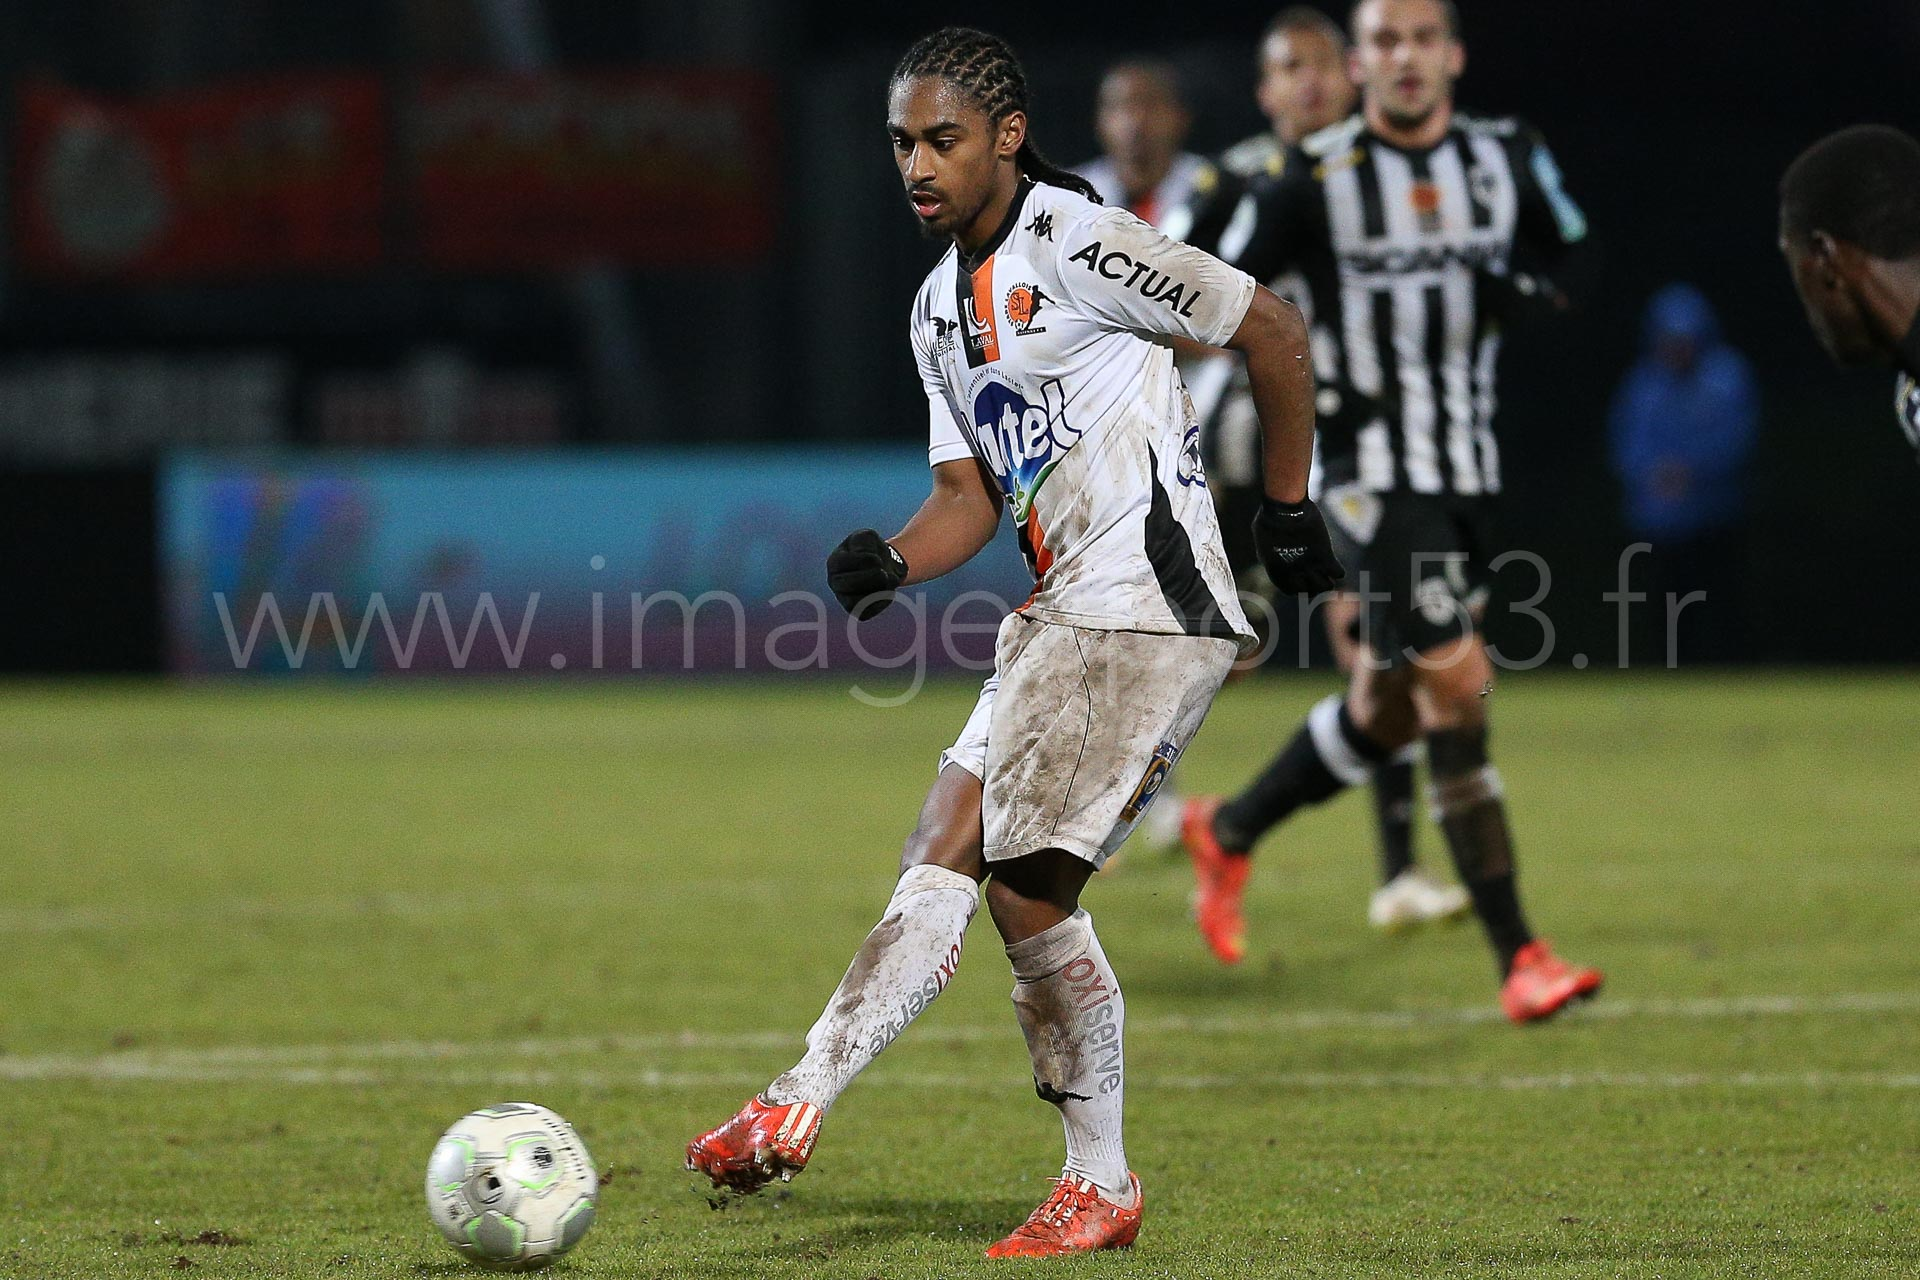 NG-Ligue2-1415-J25-Angers-Laval_20